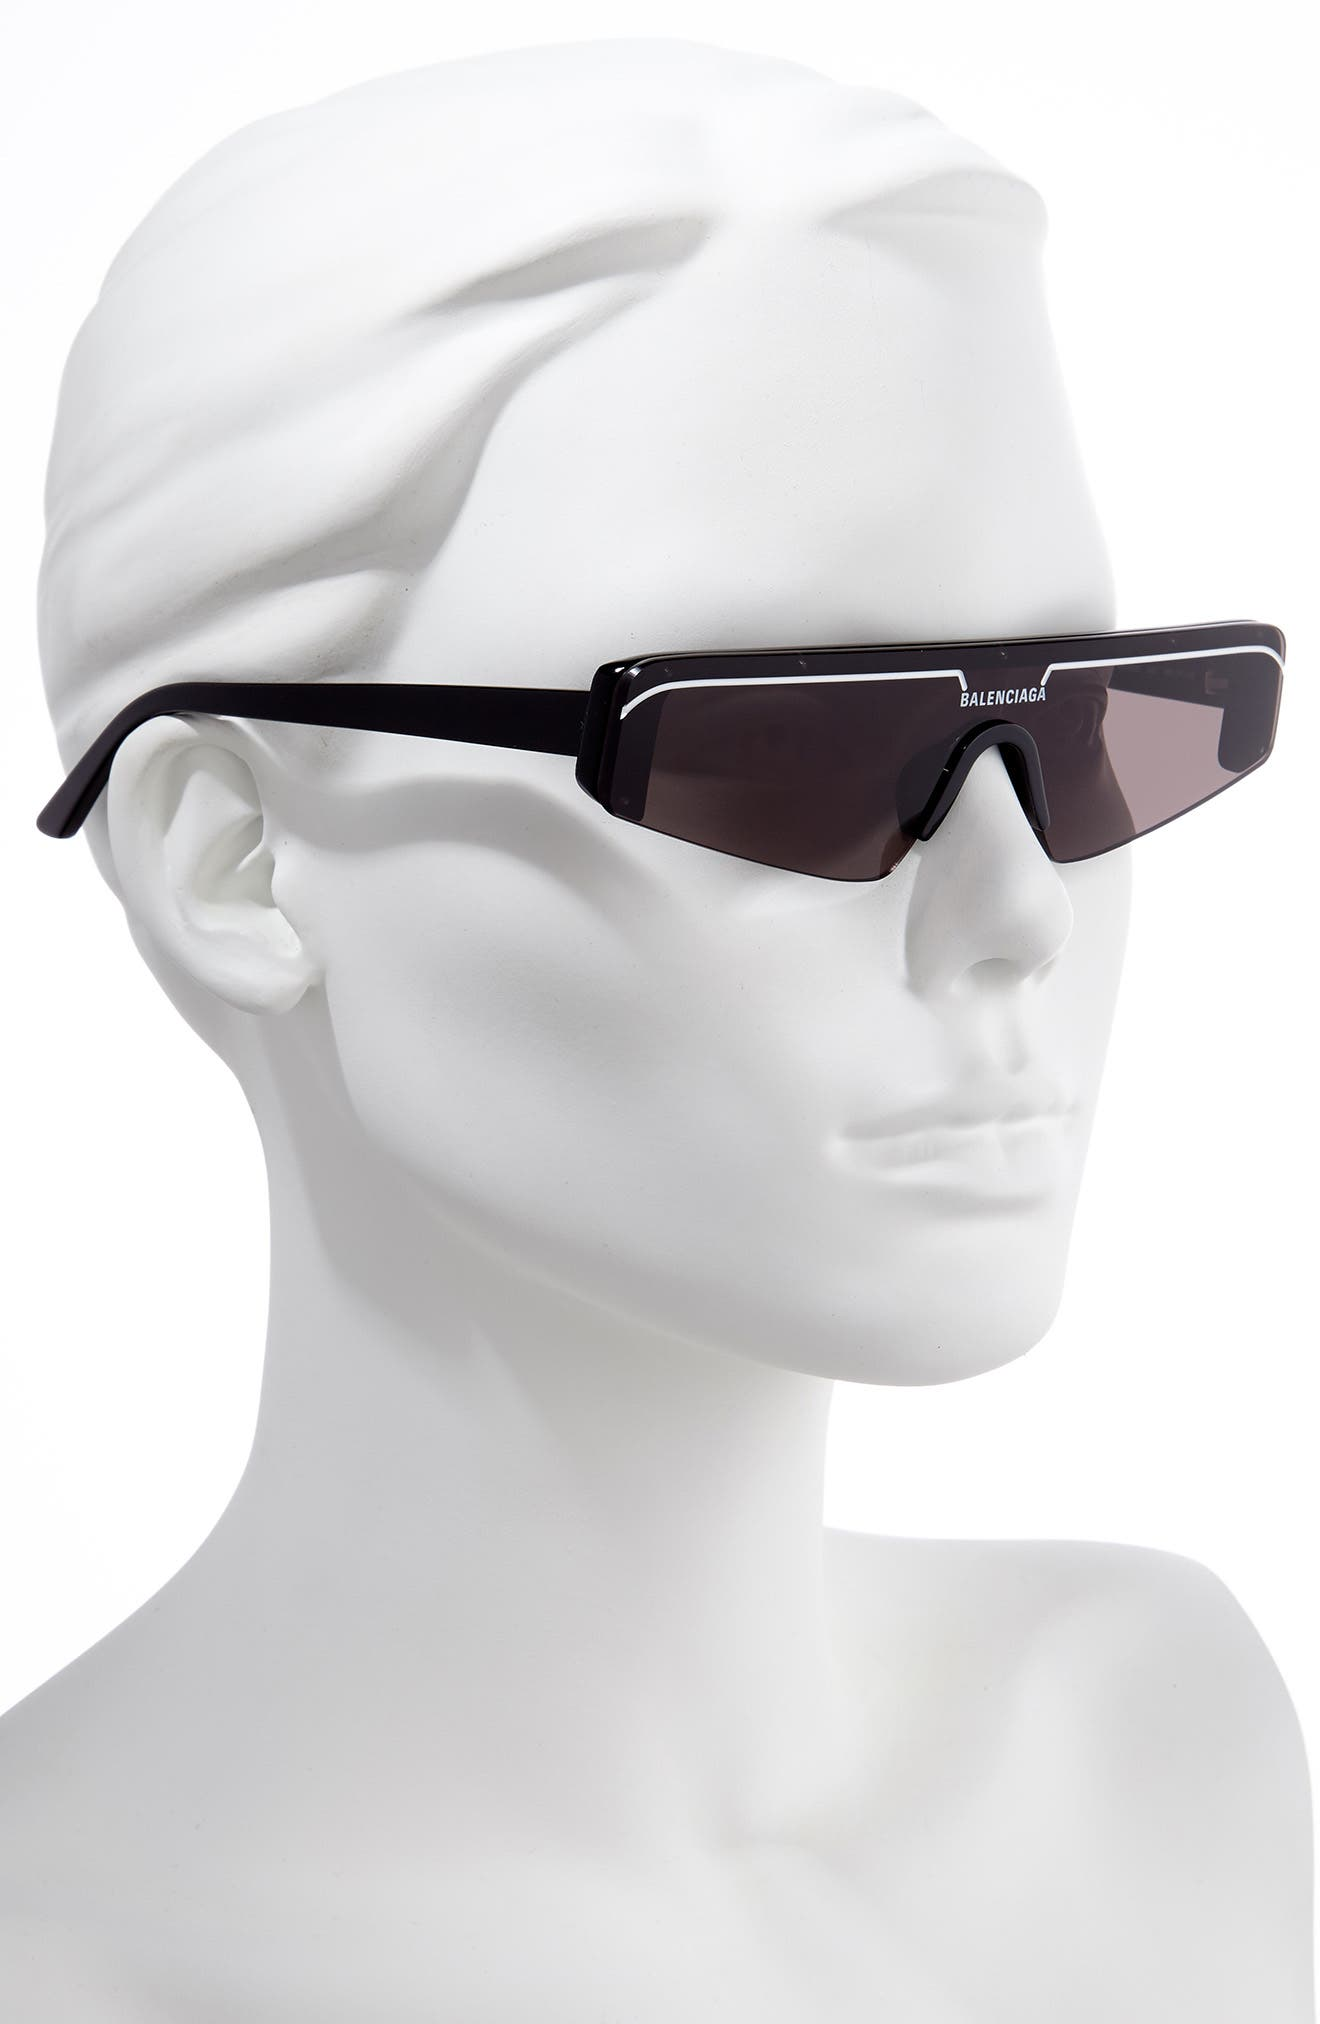 BALENCIAGA, 99mm Shield Sunglasses, Alternate thumbnail 2, color, SHINY BLACK/ GREY